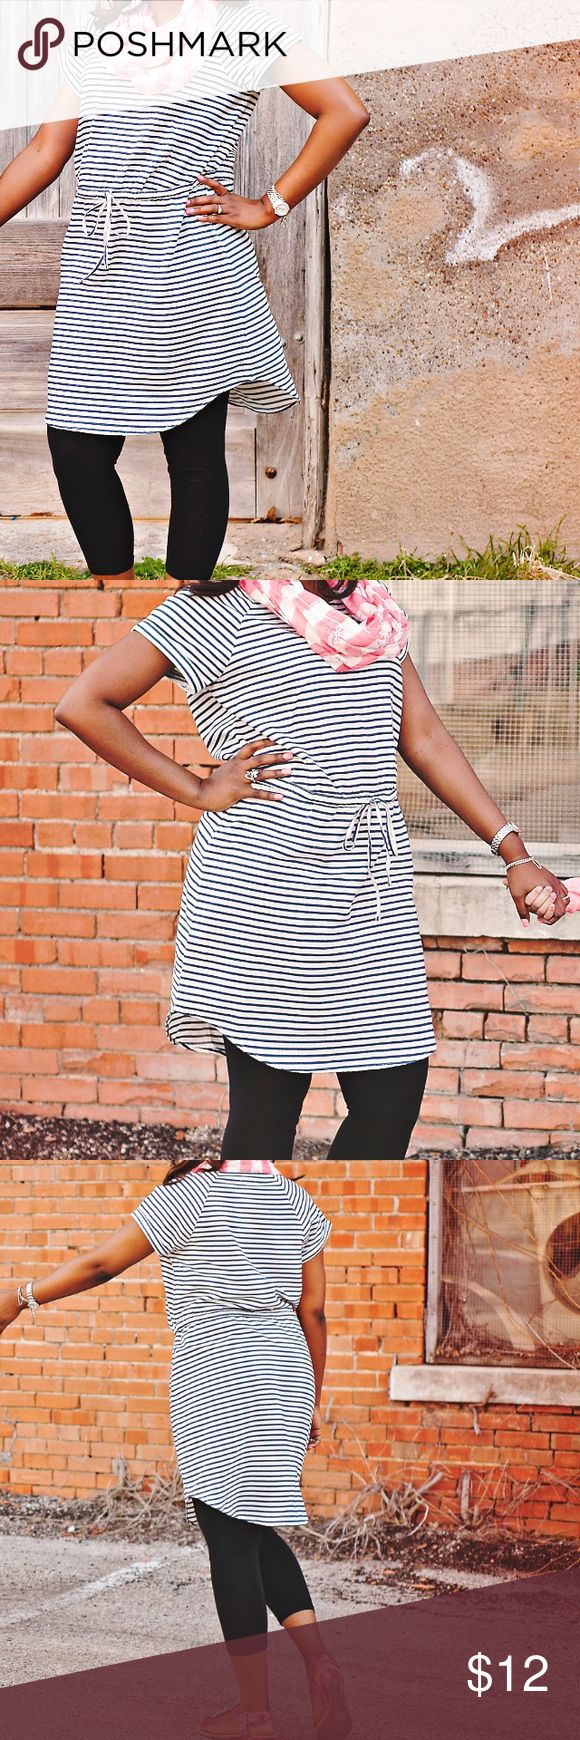 Old Navy Striped Dress Navy/White dress, perfect with leggings. If you're shorter, then leggings probably wouldn't be necessary for you. Either way will look great. The sleeves have a little cuff at the end. This is one of my favorite quick go-to dresses. Old Navy Dresses